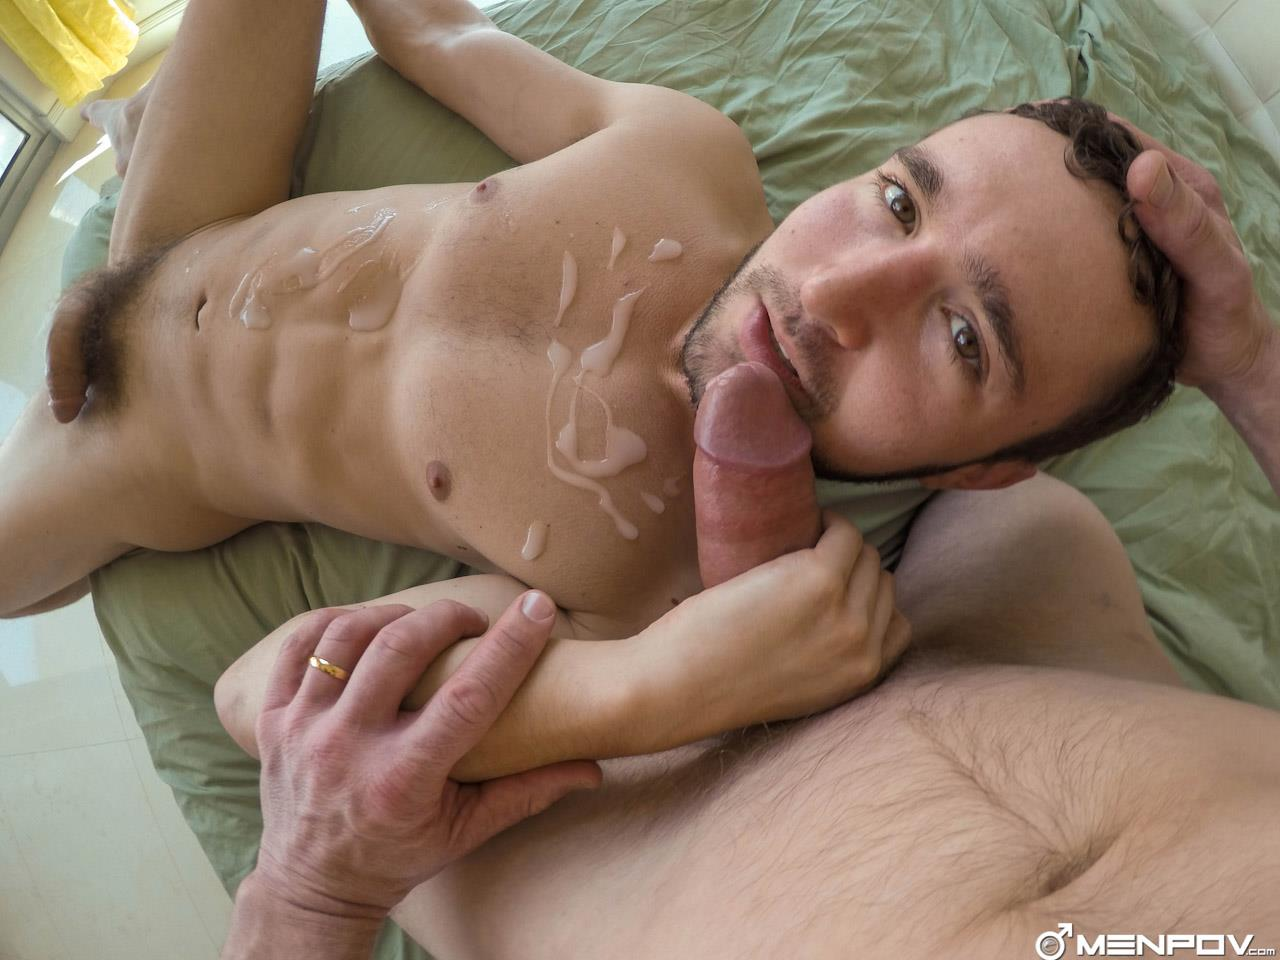 MenPOV-Colt-Rivers-and-Adam-Herst-Daddy-Fucking-His-Boy-Toy-With-A-Thick-Cock-Amateur-Gay-Porn-01 Muscular Daddy Fucking His Boy Toy With His Thick Hard Cock